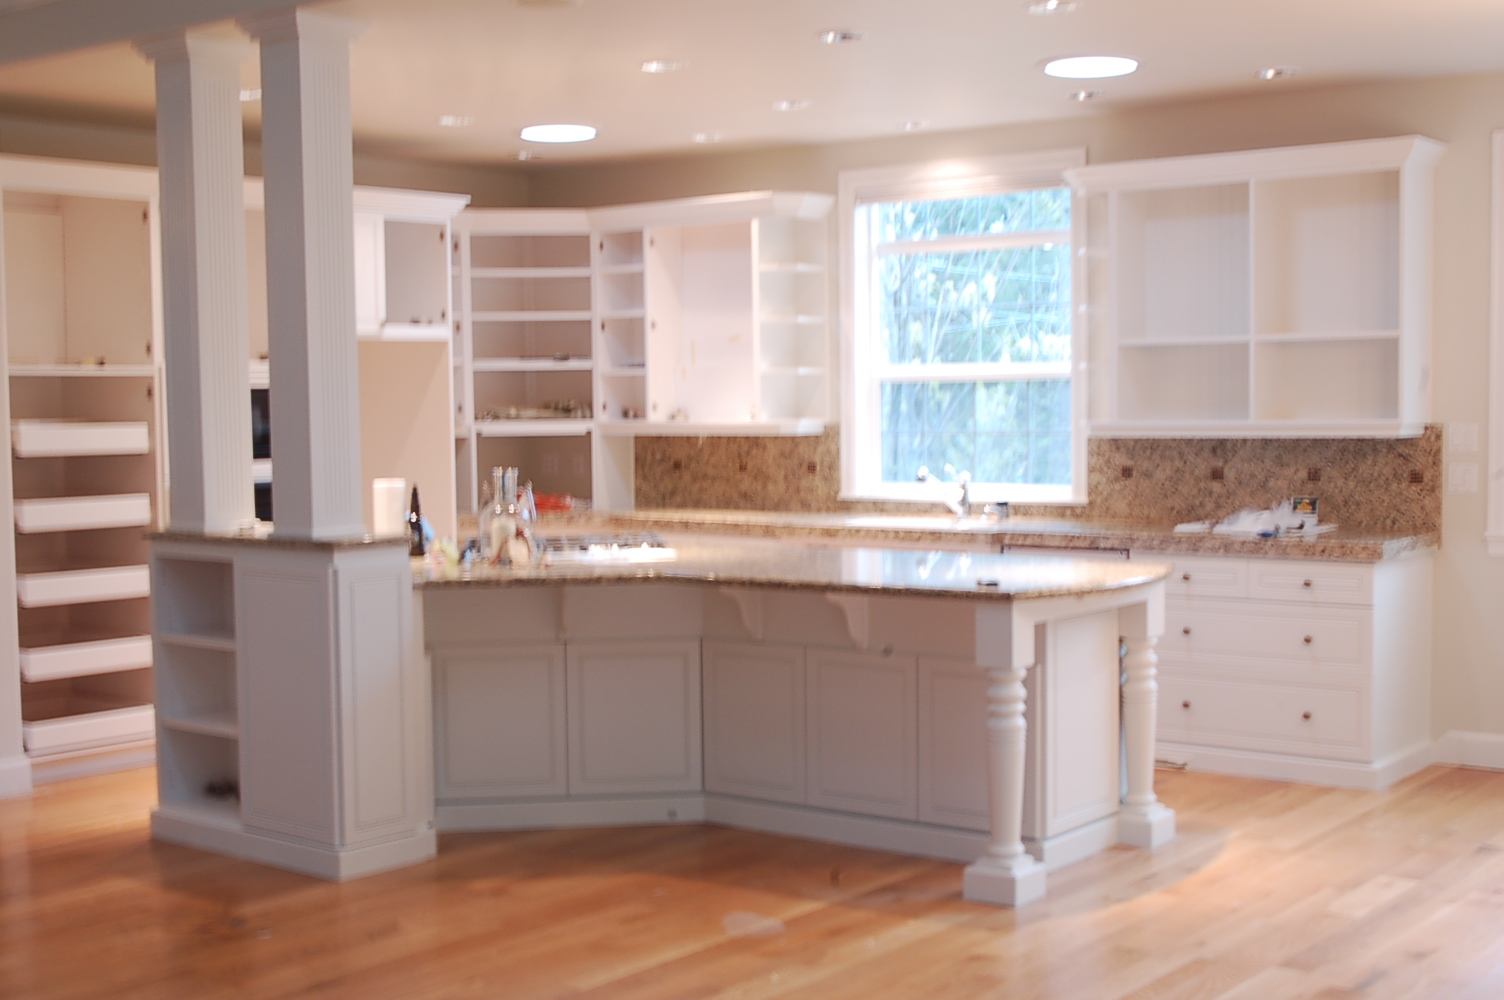 Benjamin Moore Dove White Kitchen Cabinets